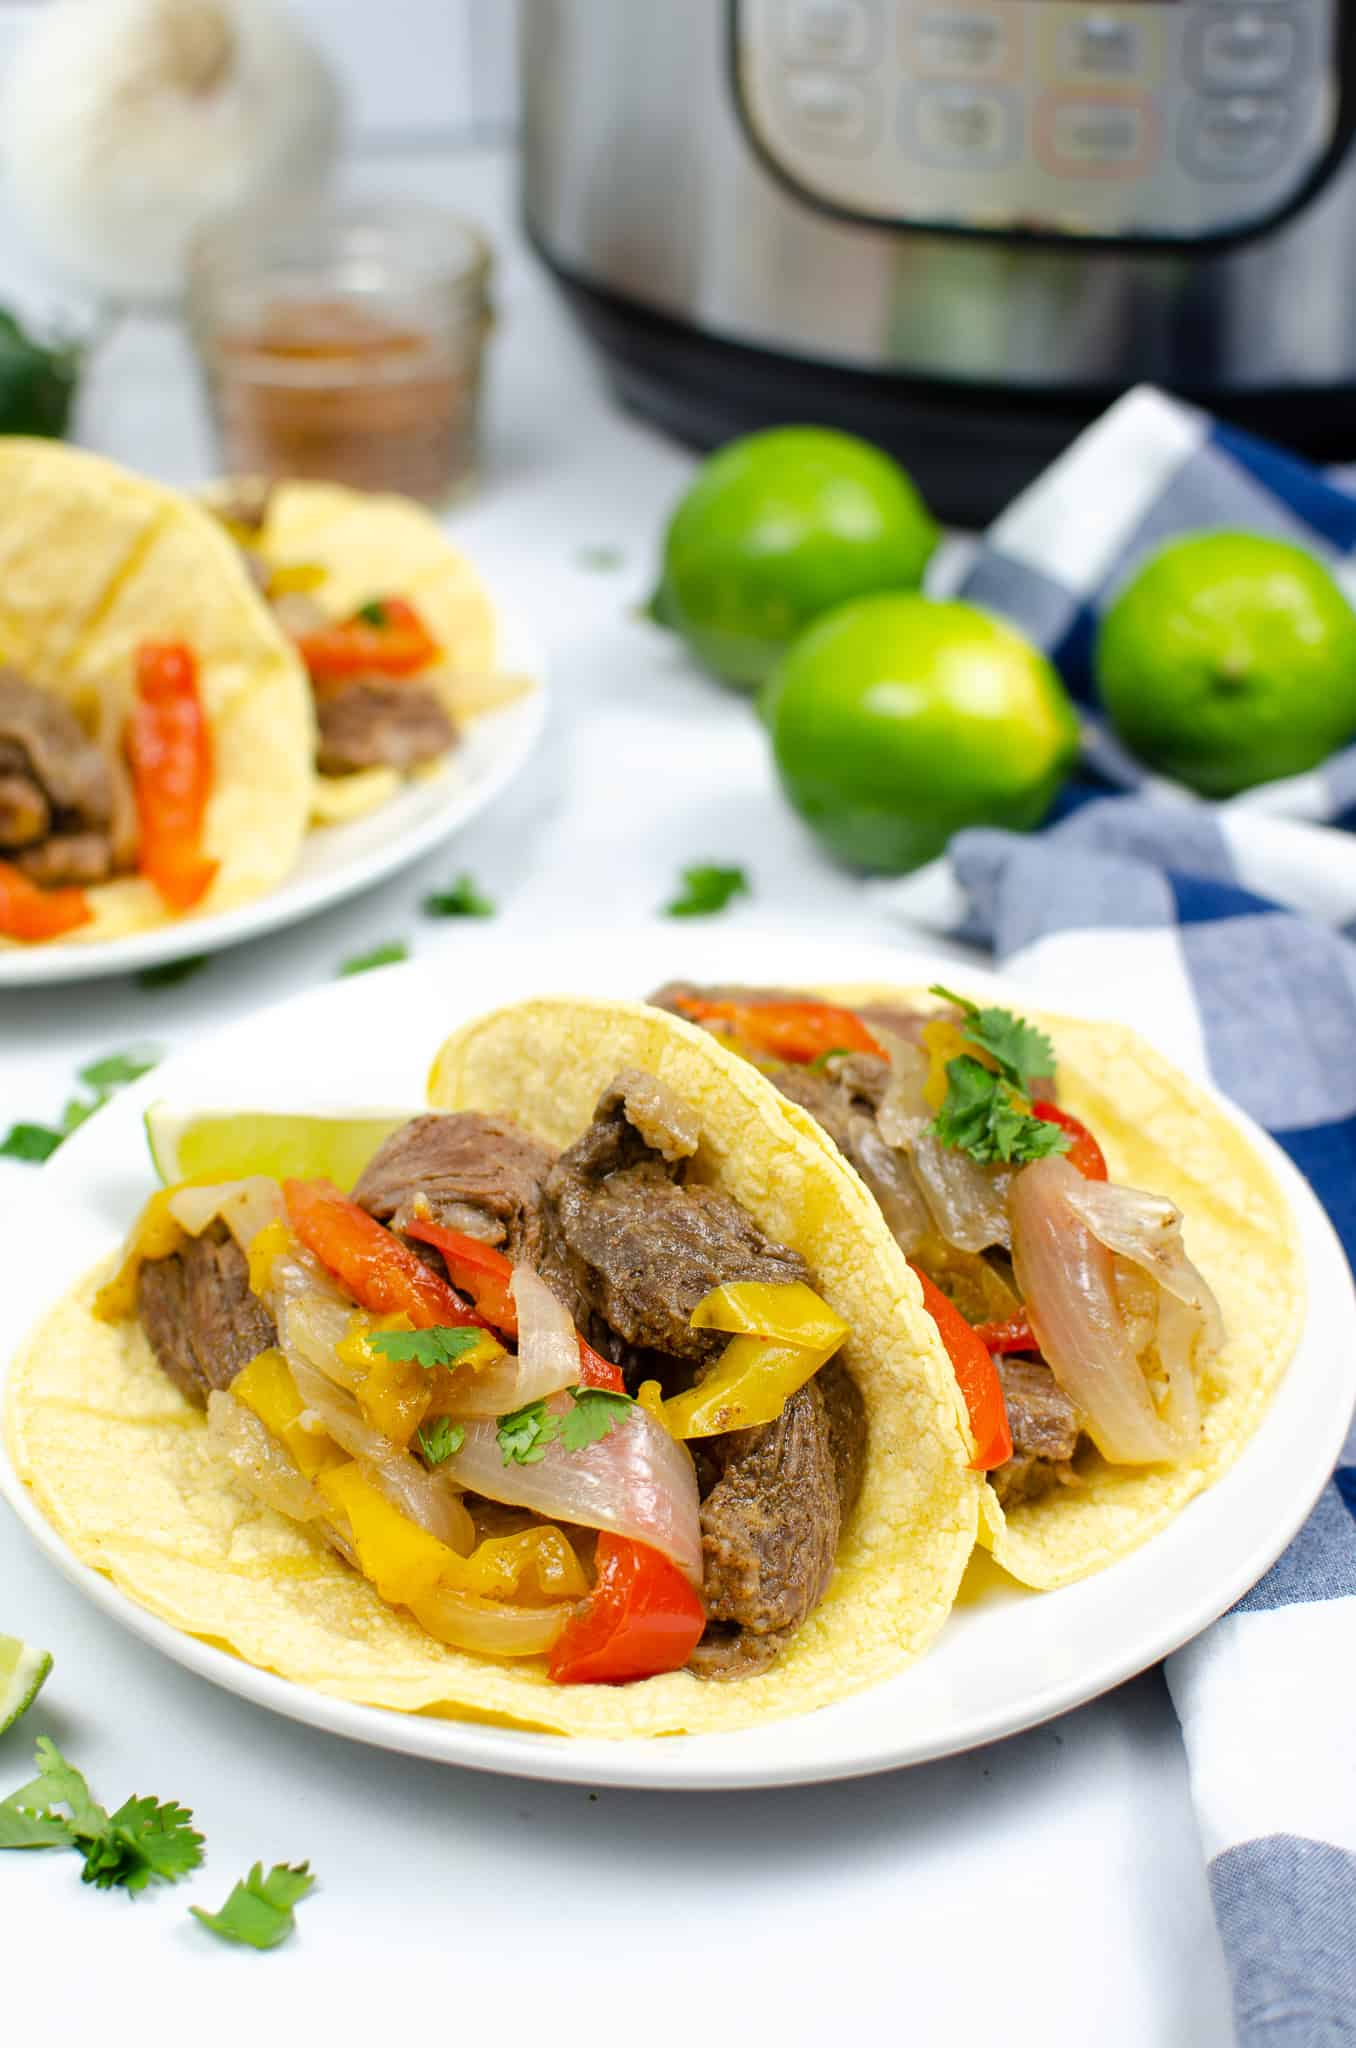 Instant Pot Steak Fajitas with limes and instant pot in background